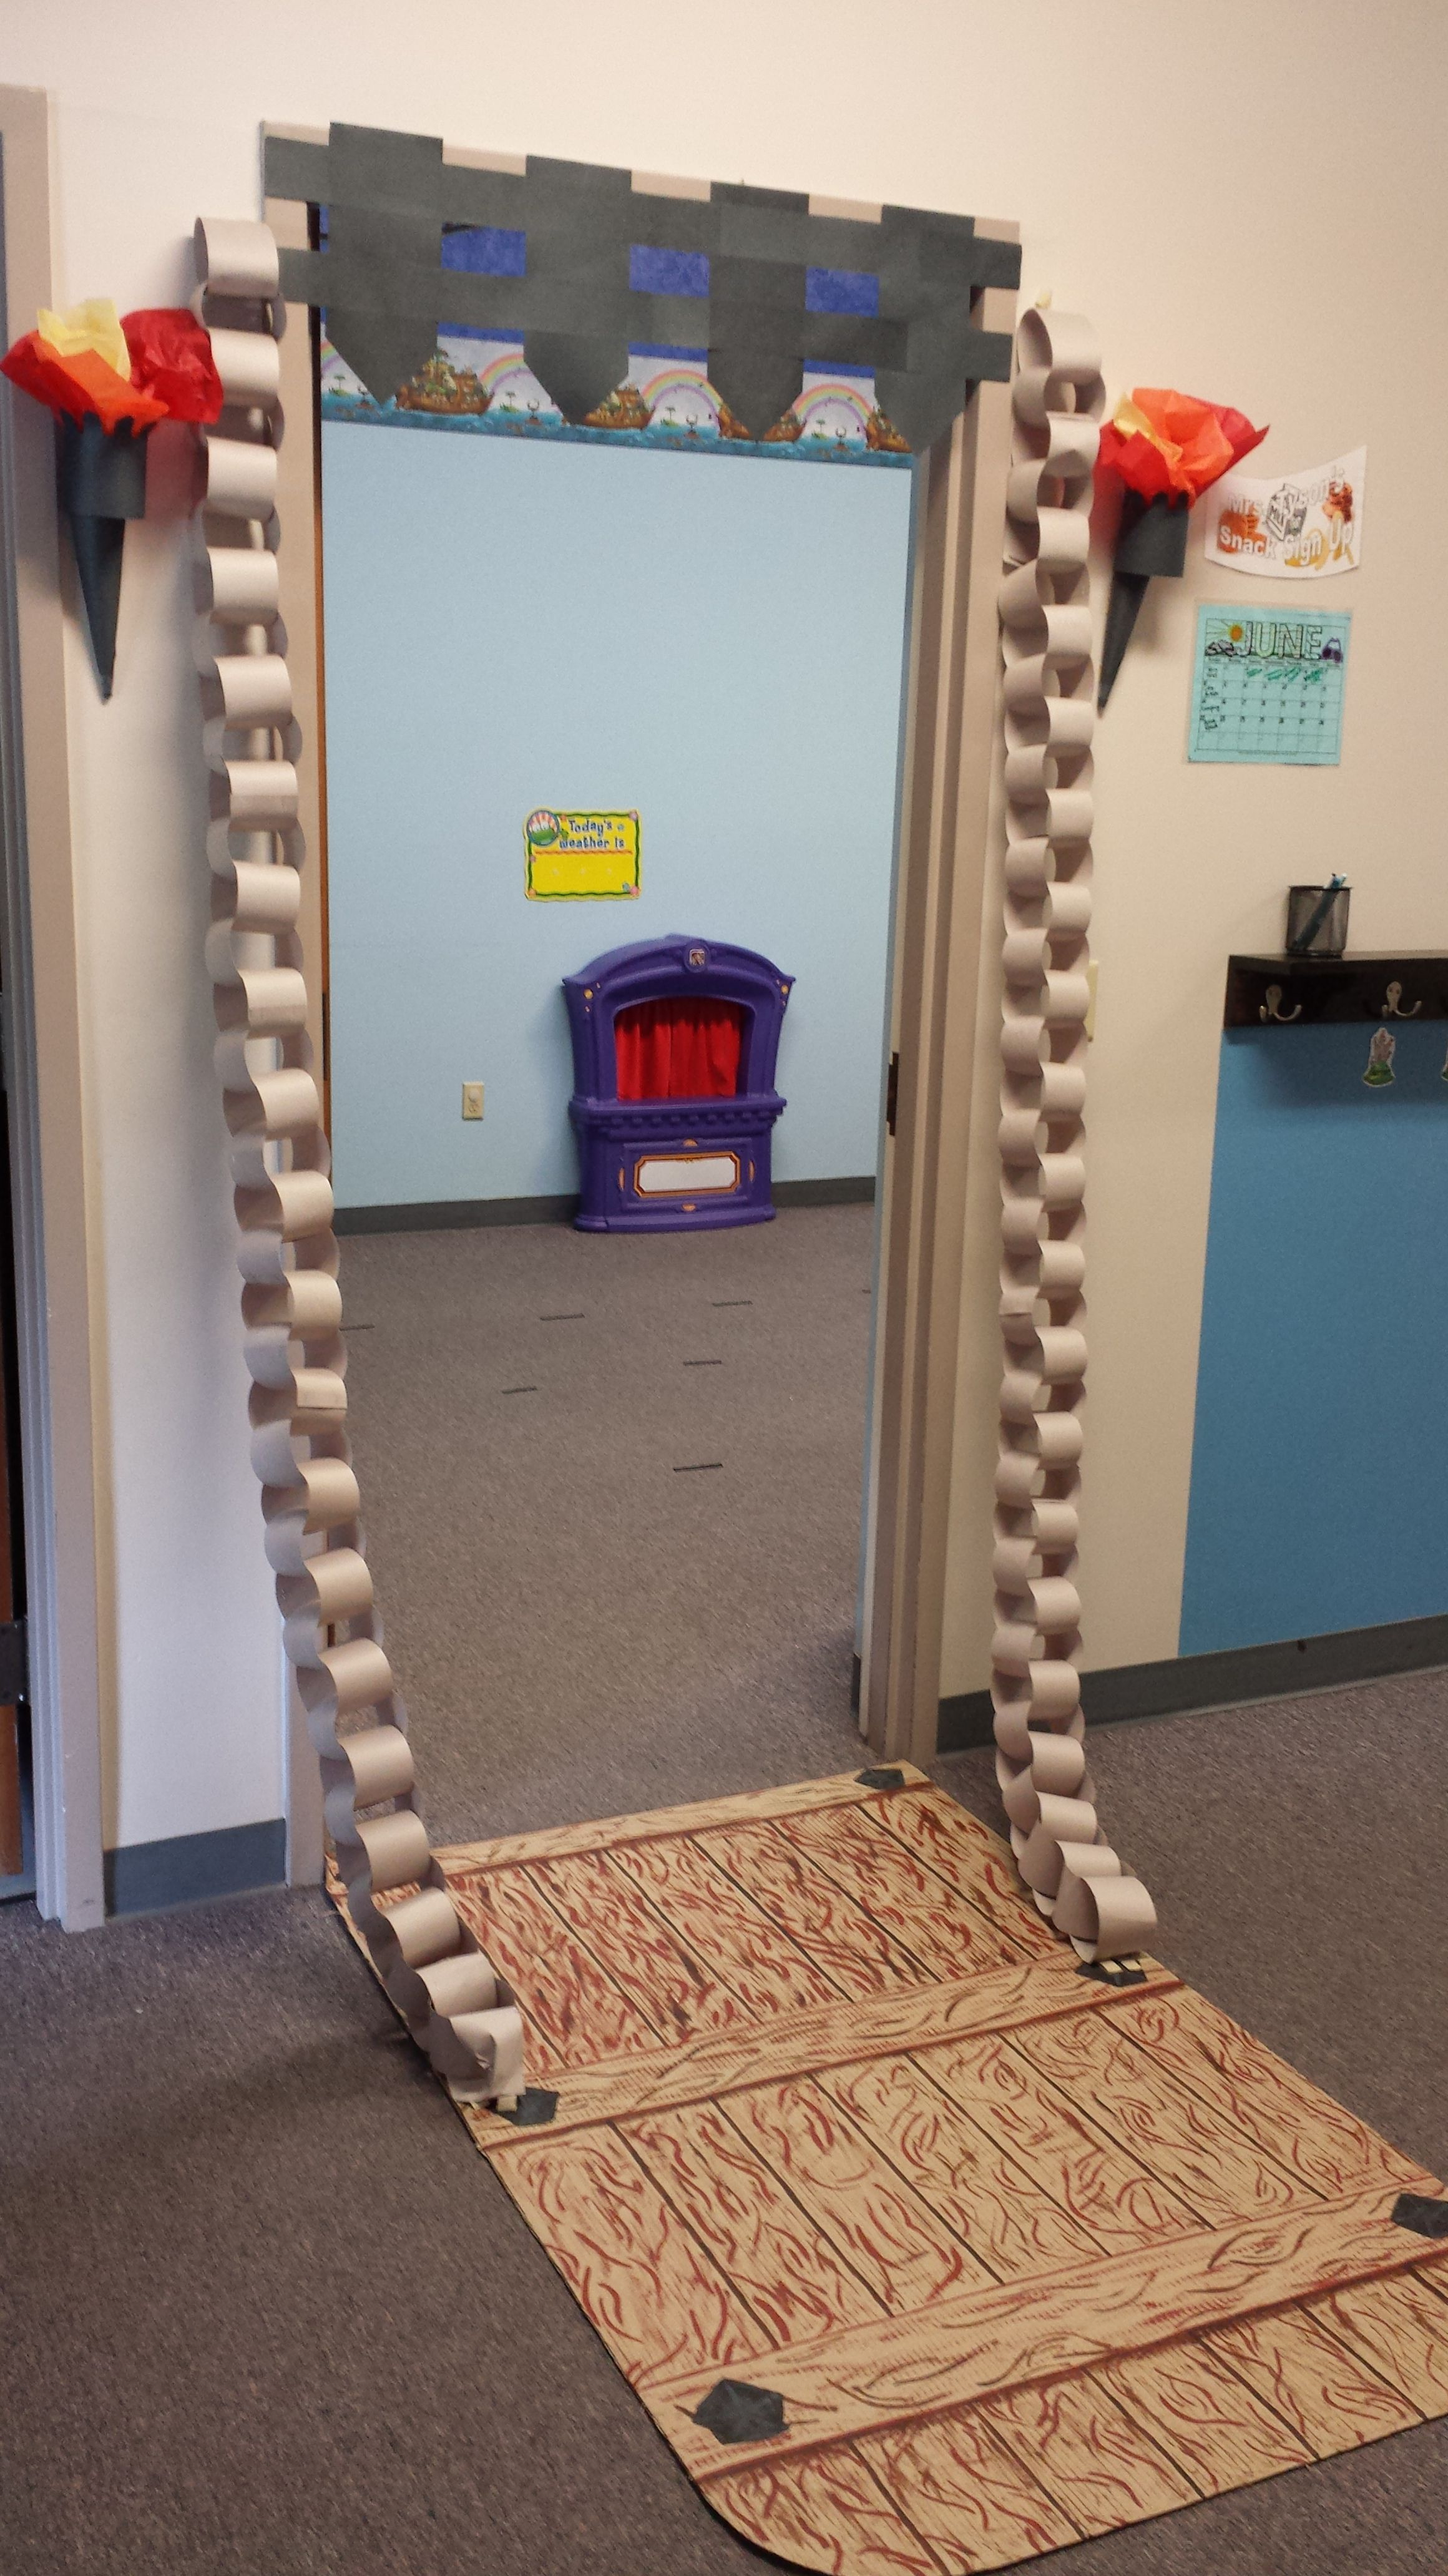 fairy tale drawbridge for my classroom door | summer camps